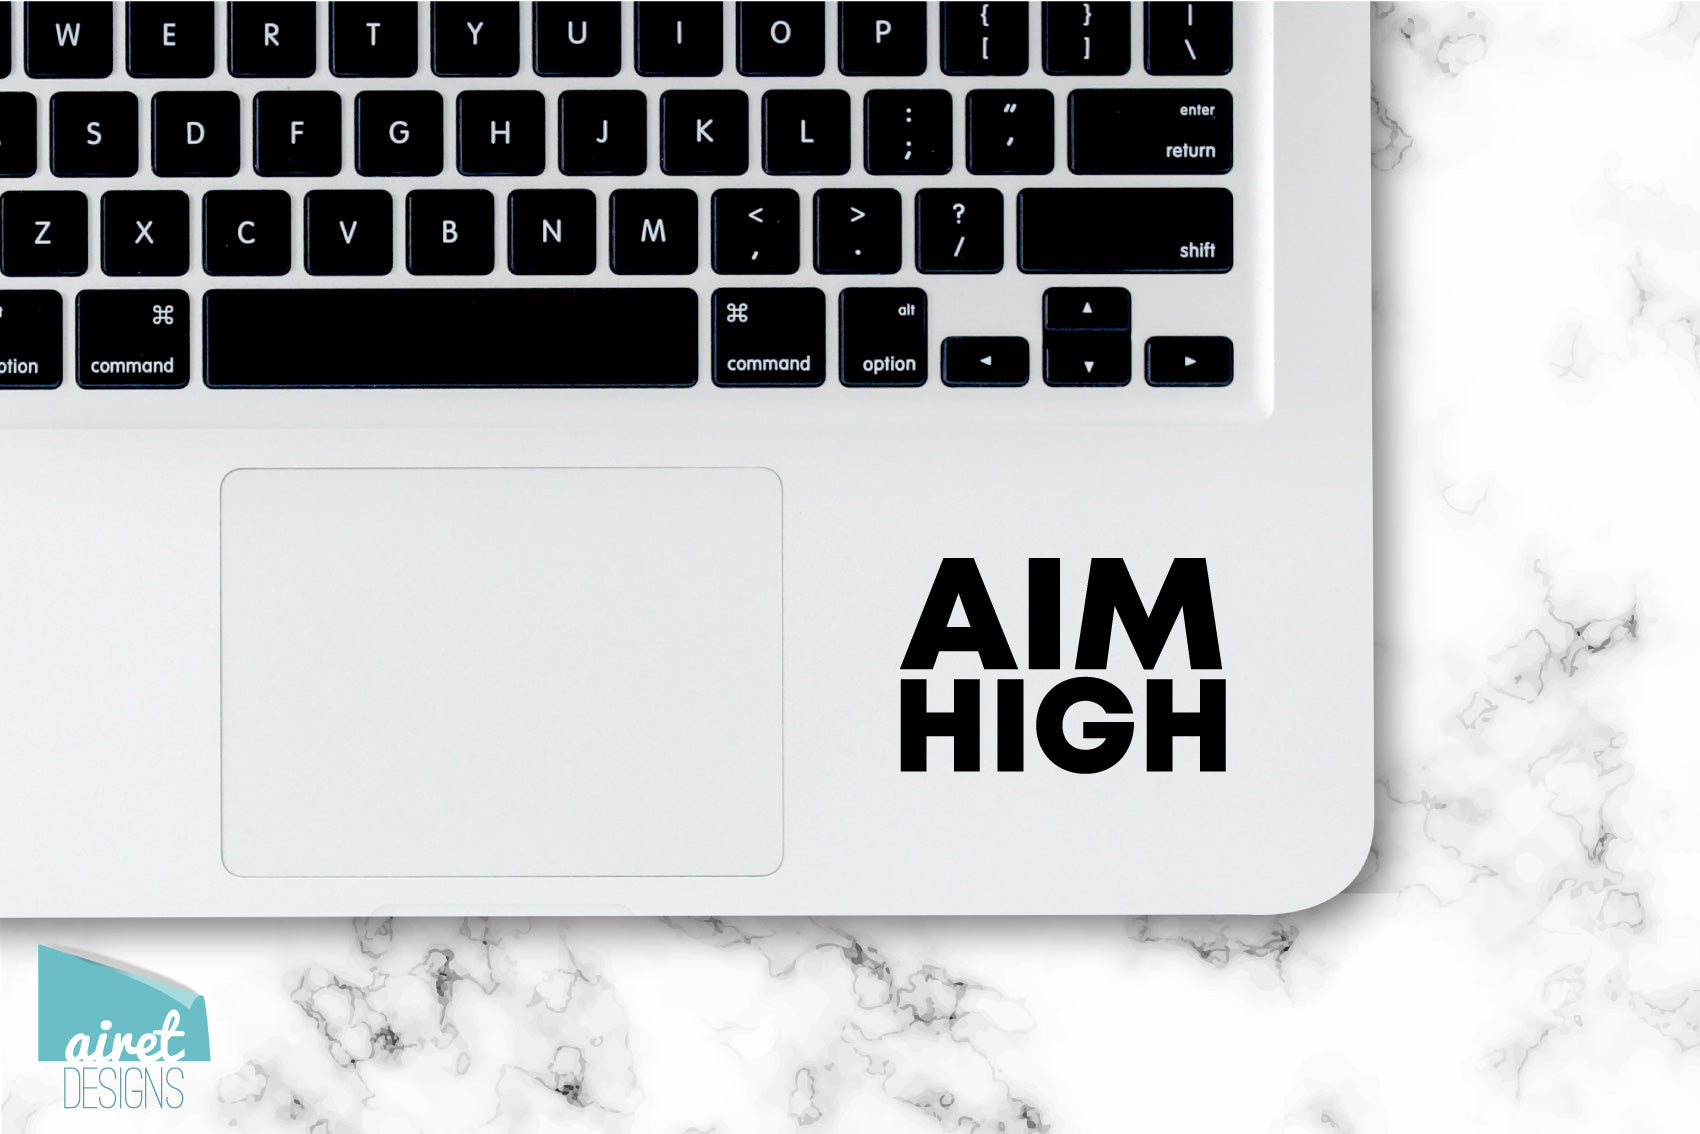 AIM HIGH - Motivational Uplifting Happy Quote Inspiring Success Goals Sticker for Laptop Car Window Tablet Iphone Cell Phone Case Tumbler